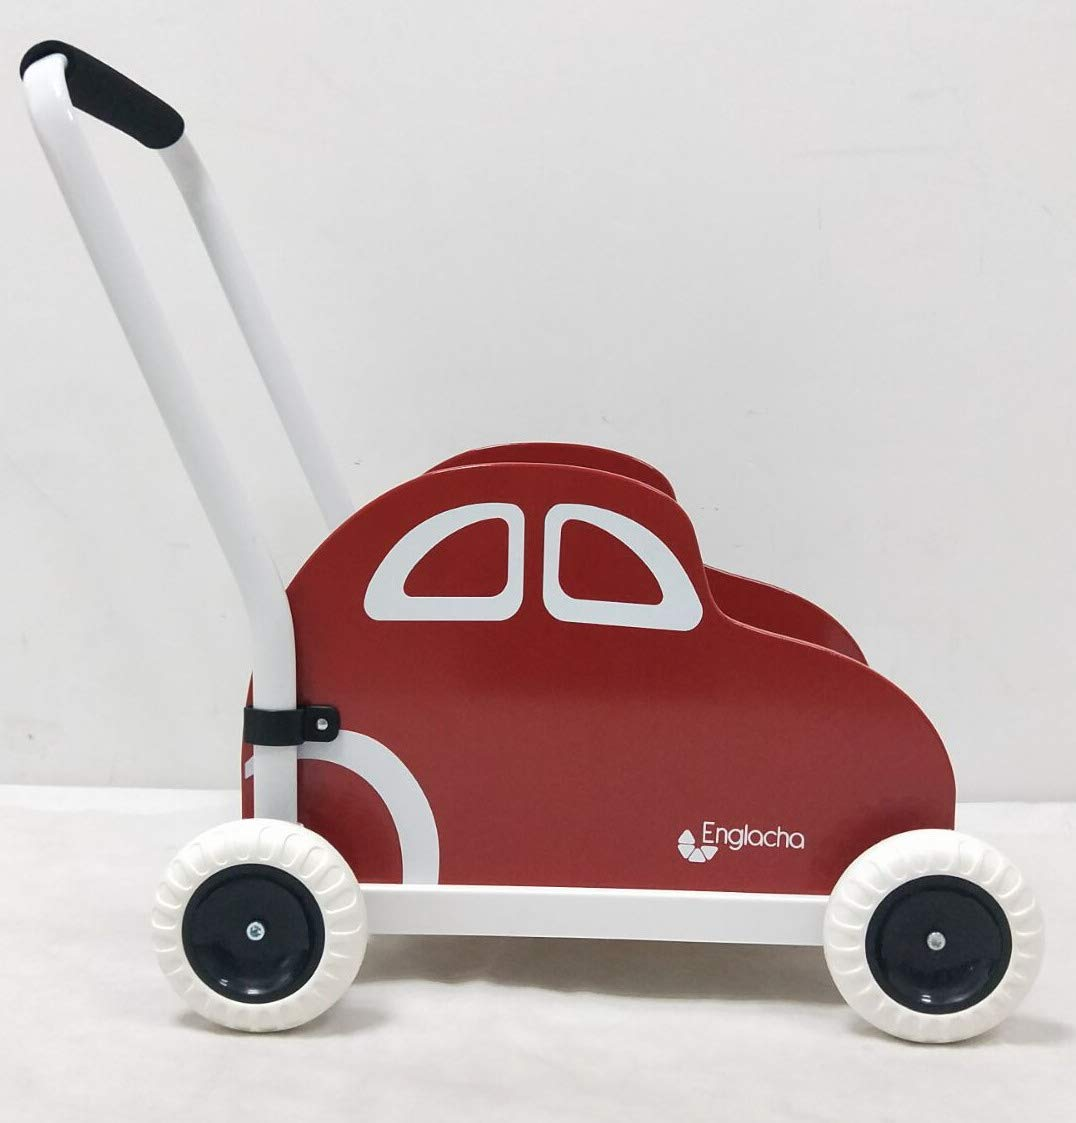 Englacha car Musical Toddler Walker, Baby Push Car with Built-in Musical Function and Speed Reduction Wheels, Red/White